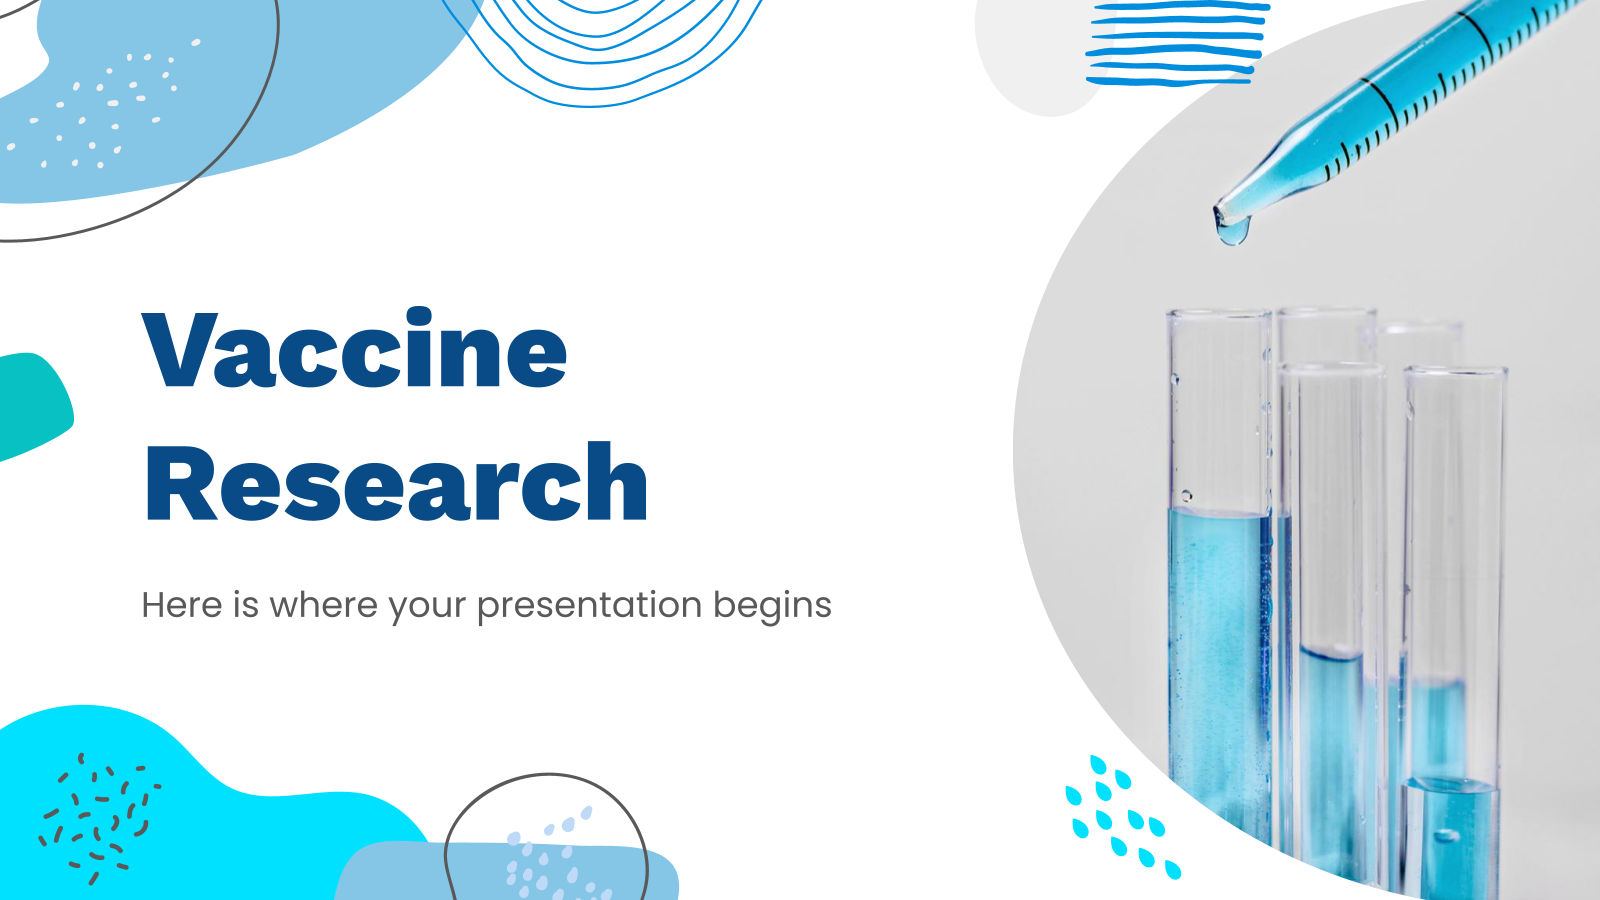 Vaccine Research presentation template